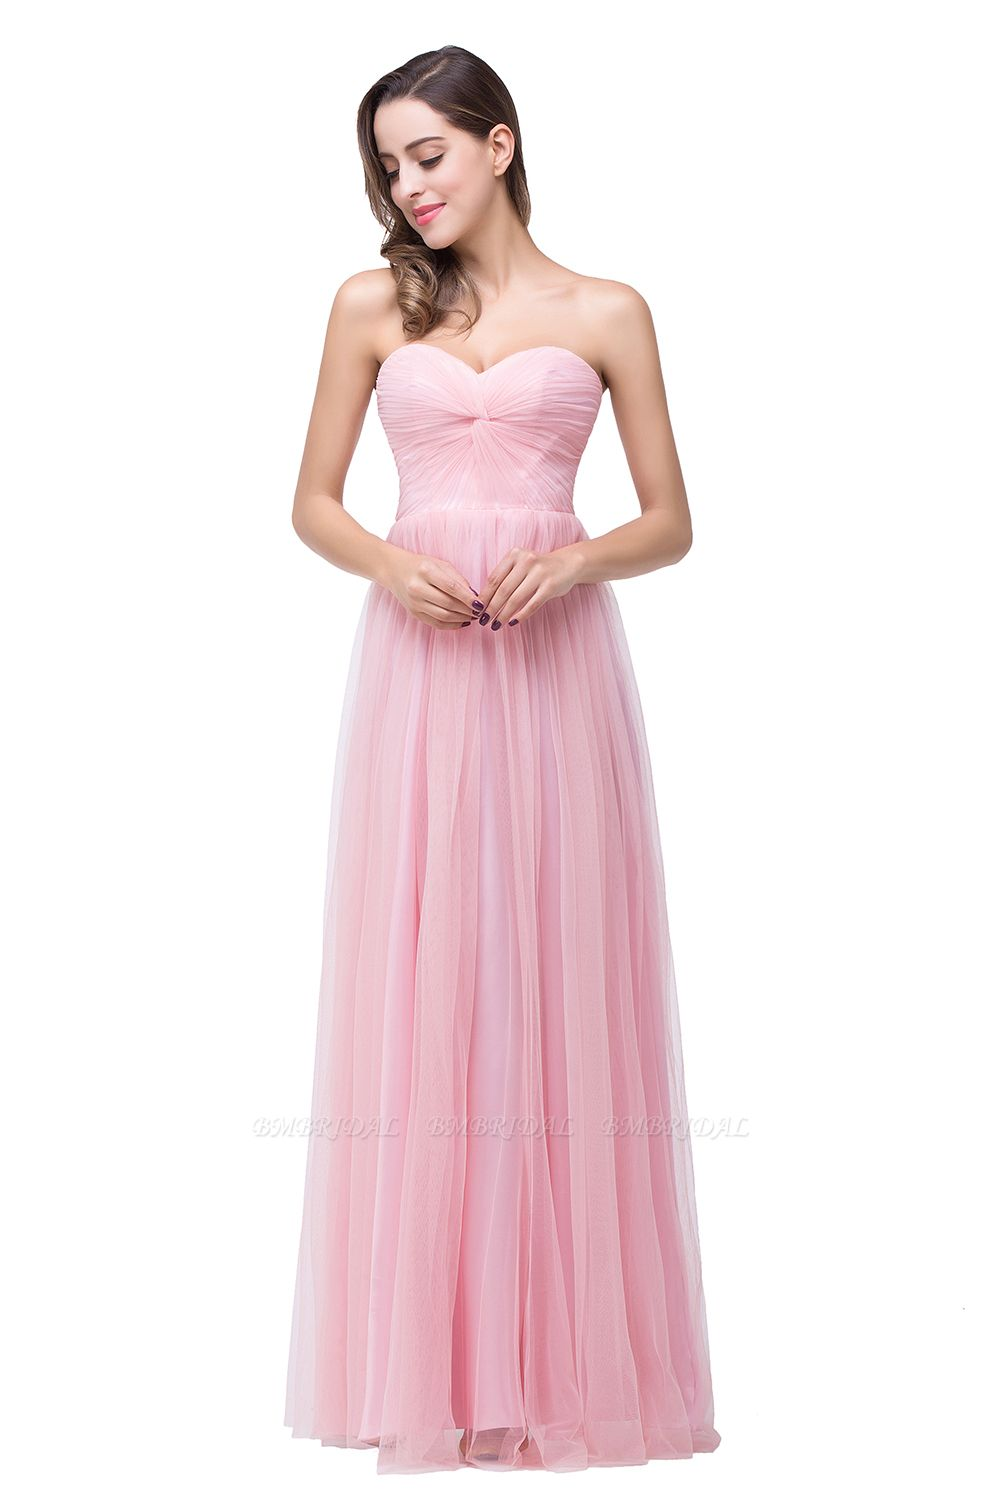 Affordbale A-line Tulle Sweetheart Ruffle Pink Bridesmaid Dress Online In Stock